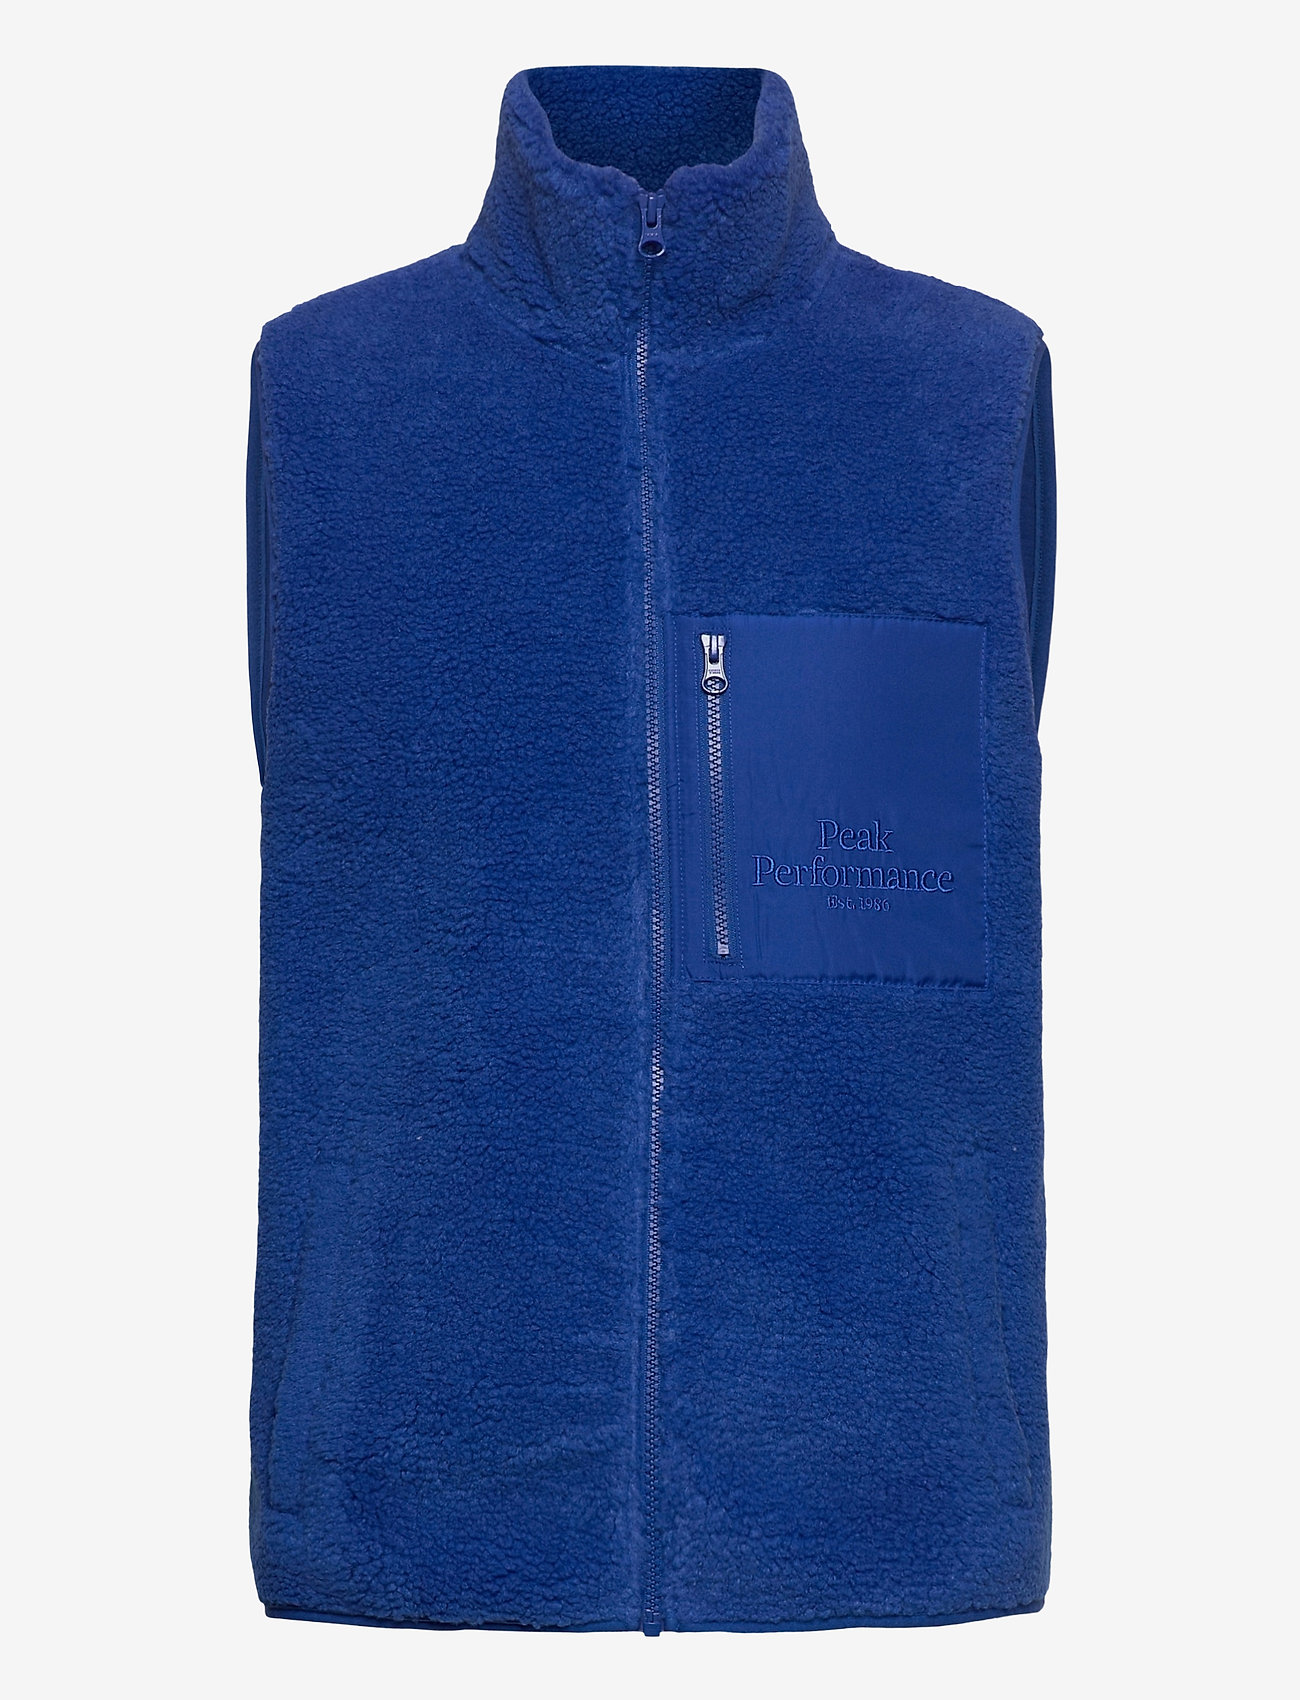 Peak Performance M Original Pile Zip Vest Artic Blue - Jakker og frakker ARTIC BLUE - Menn Klær